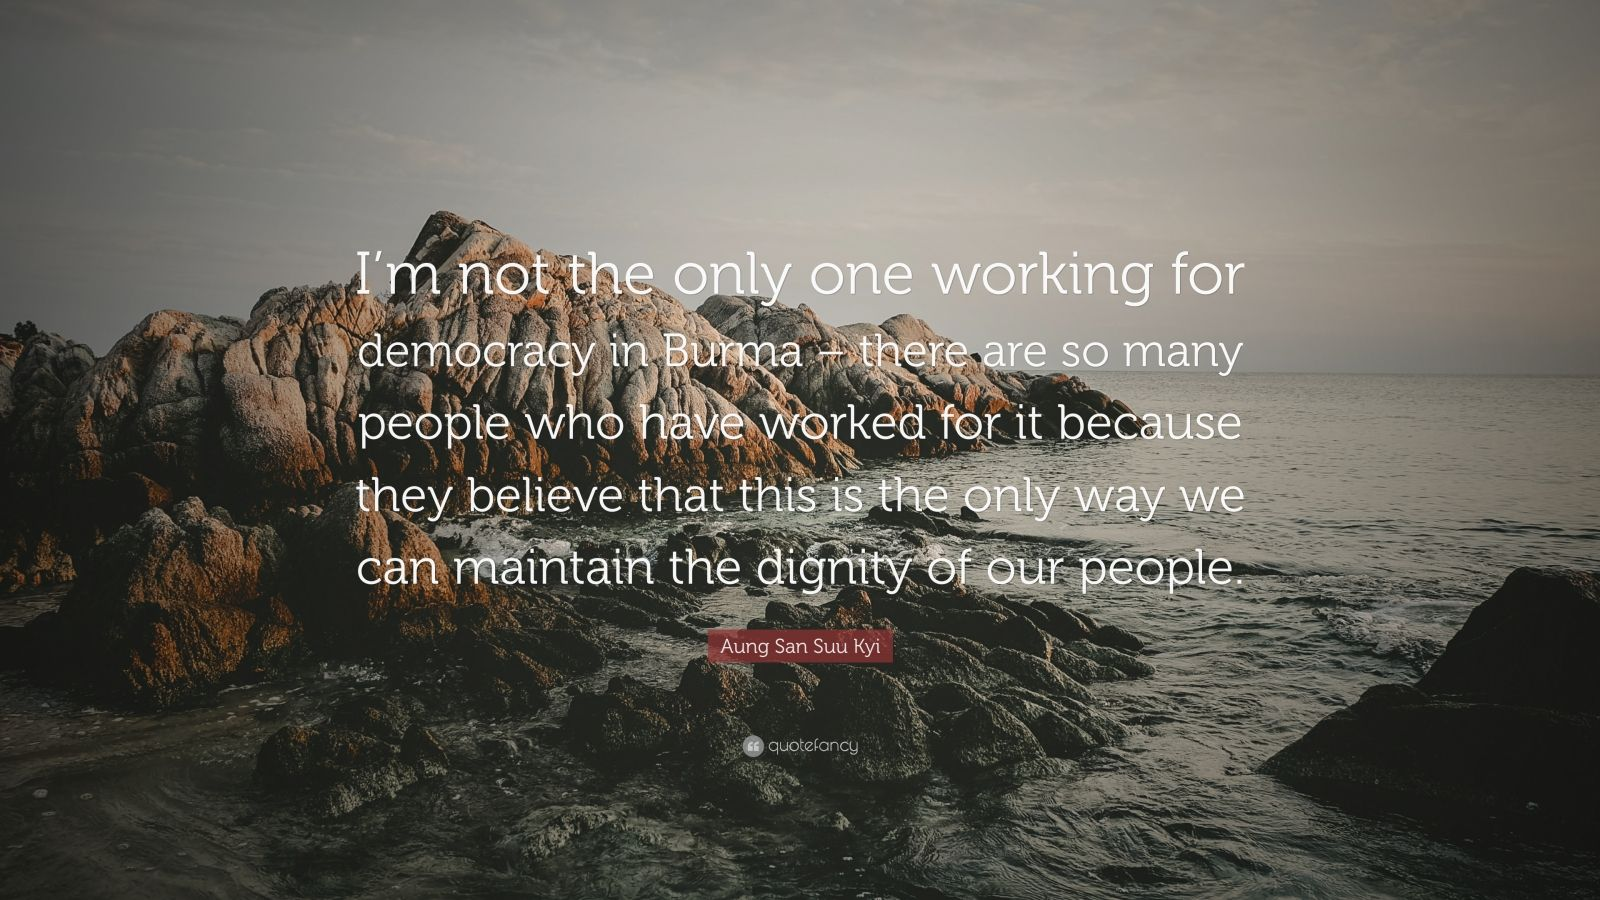 """Aung San Suu Kyi Quote: """"I'm not the only one working for democracy in Burma – there are so many people who have worked for it because they believe that this is the only way we can maintain the dignity of our people."""""""